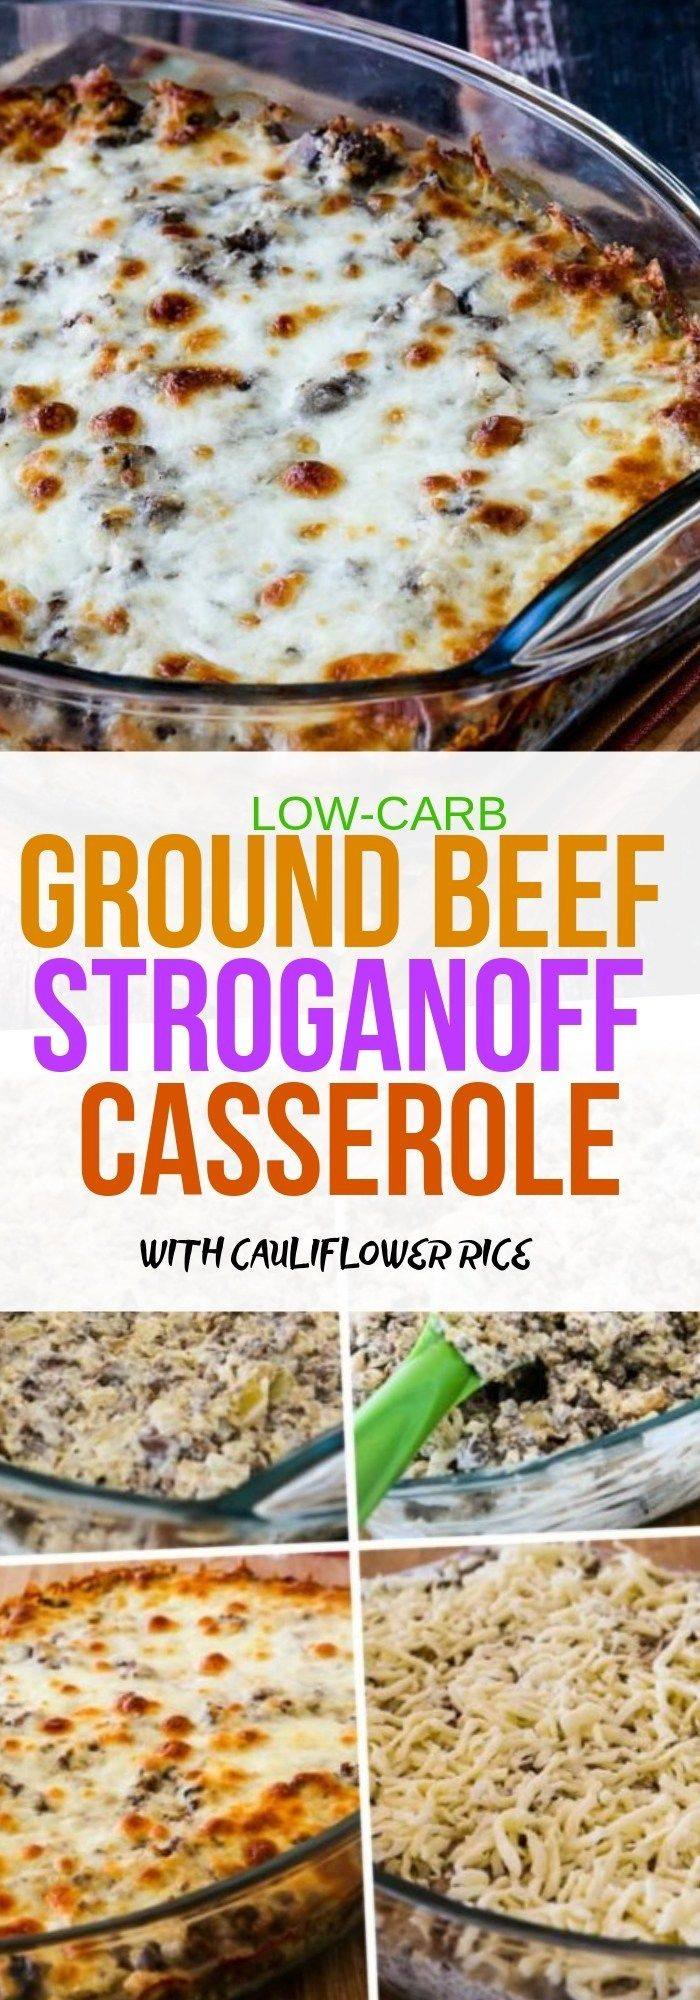 LOW-CARB GROUND BEEF STROGANOFF CASSEROLE WITH CAULIFLOWER RICE – Net Feed Daily #beefandrice